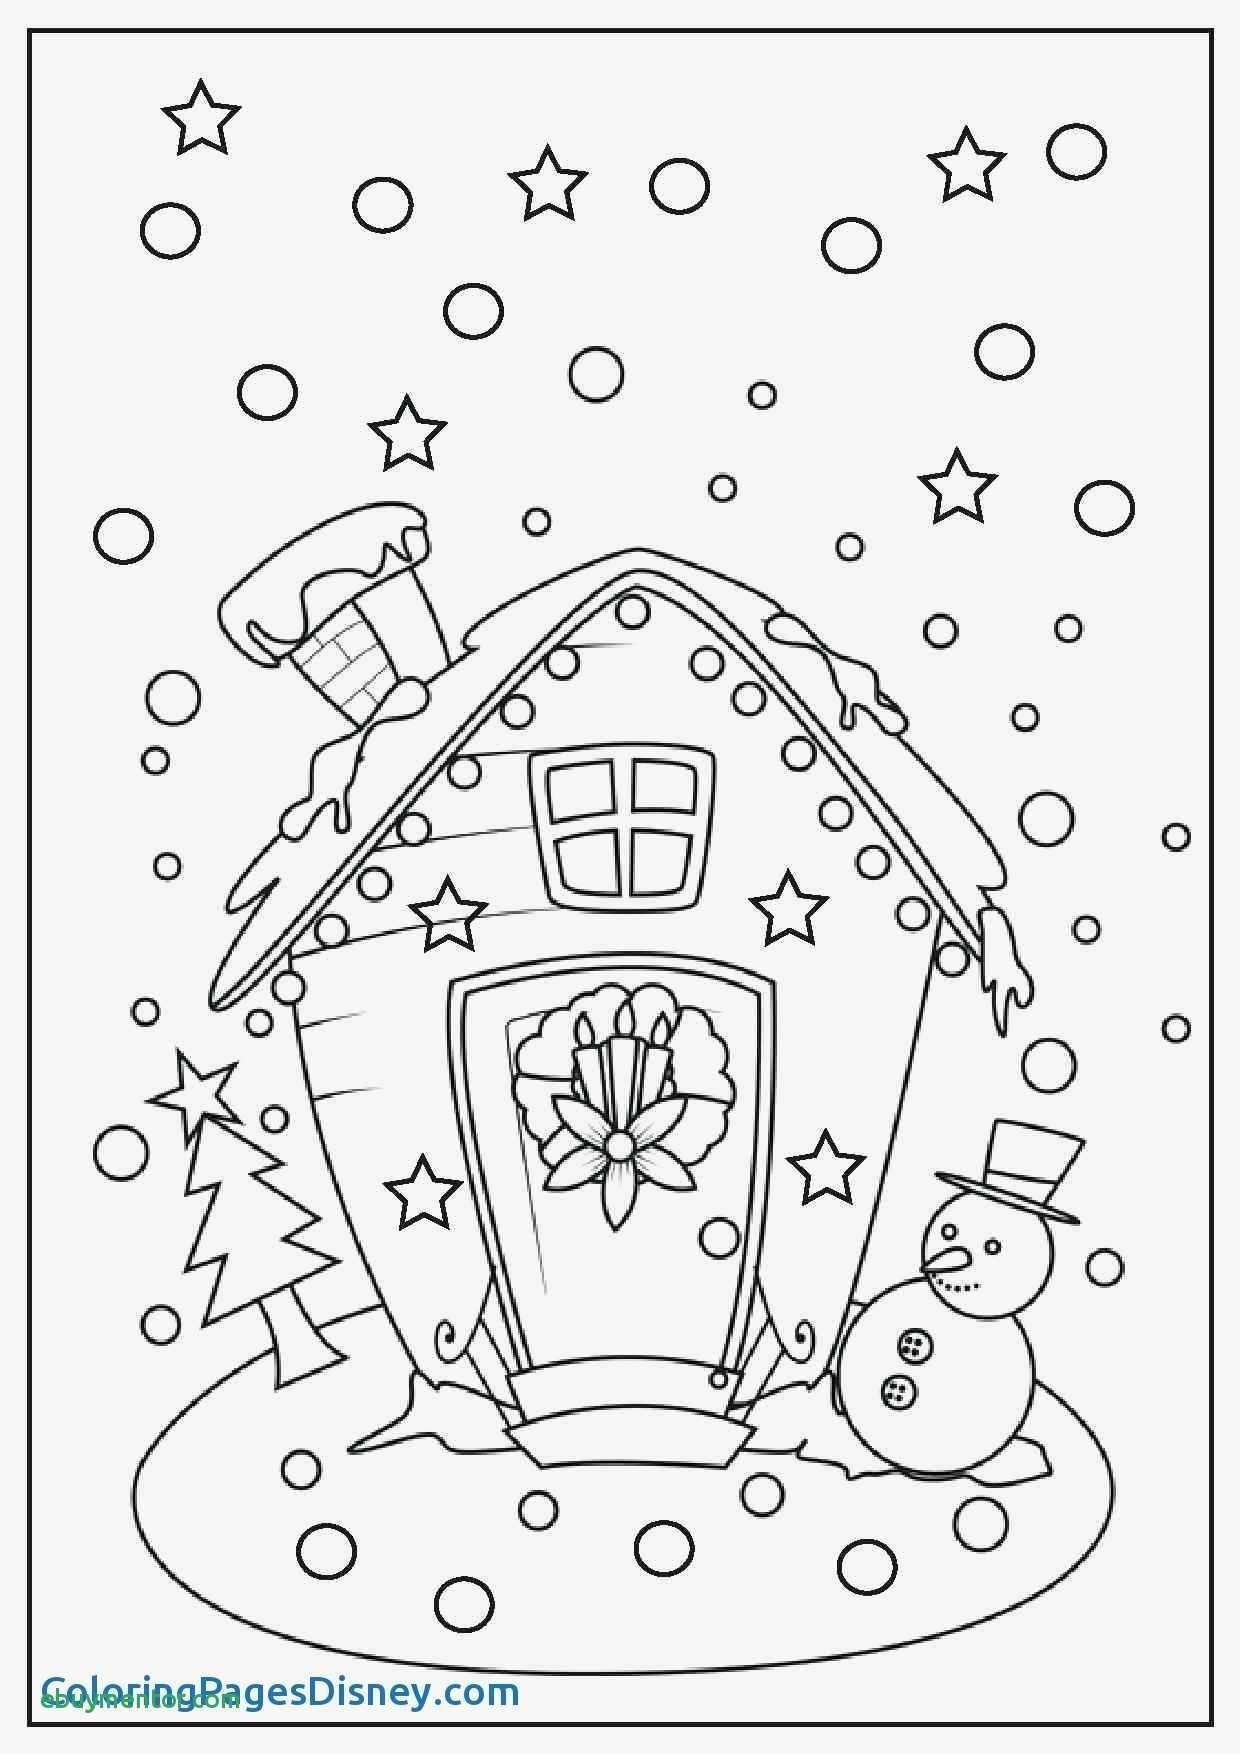 Destiny Coloring Pages  Download 3i - Save it to your computer